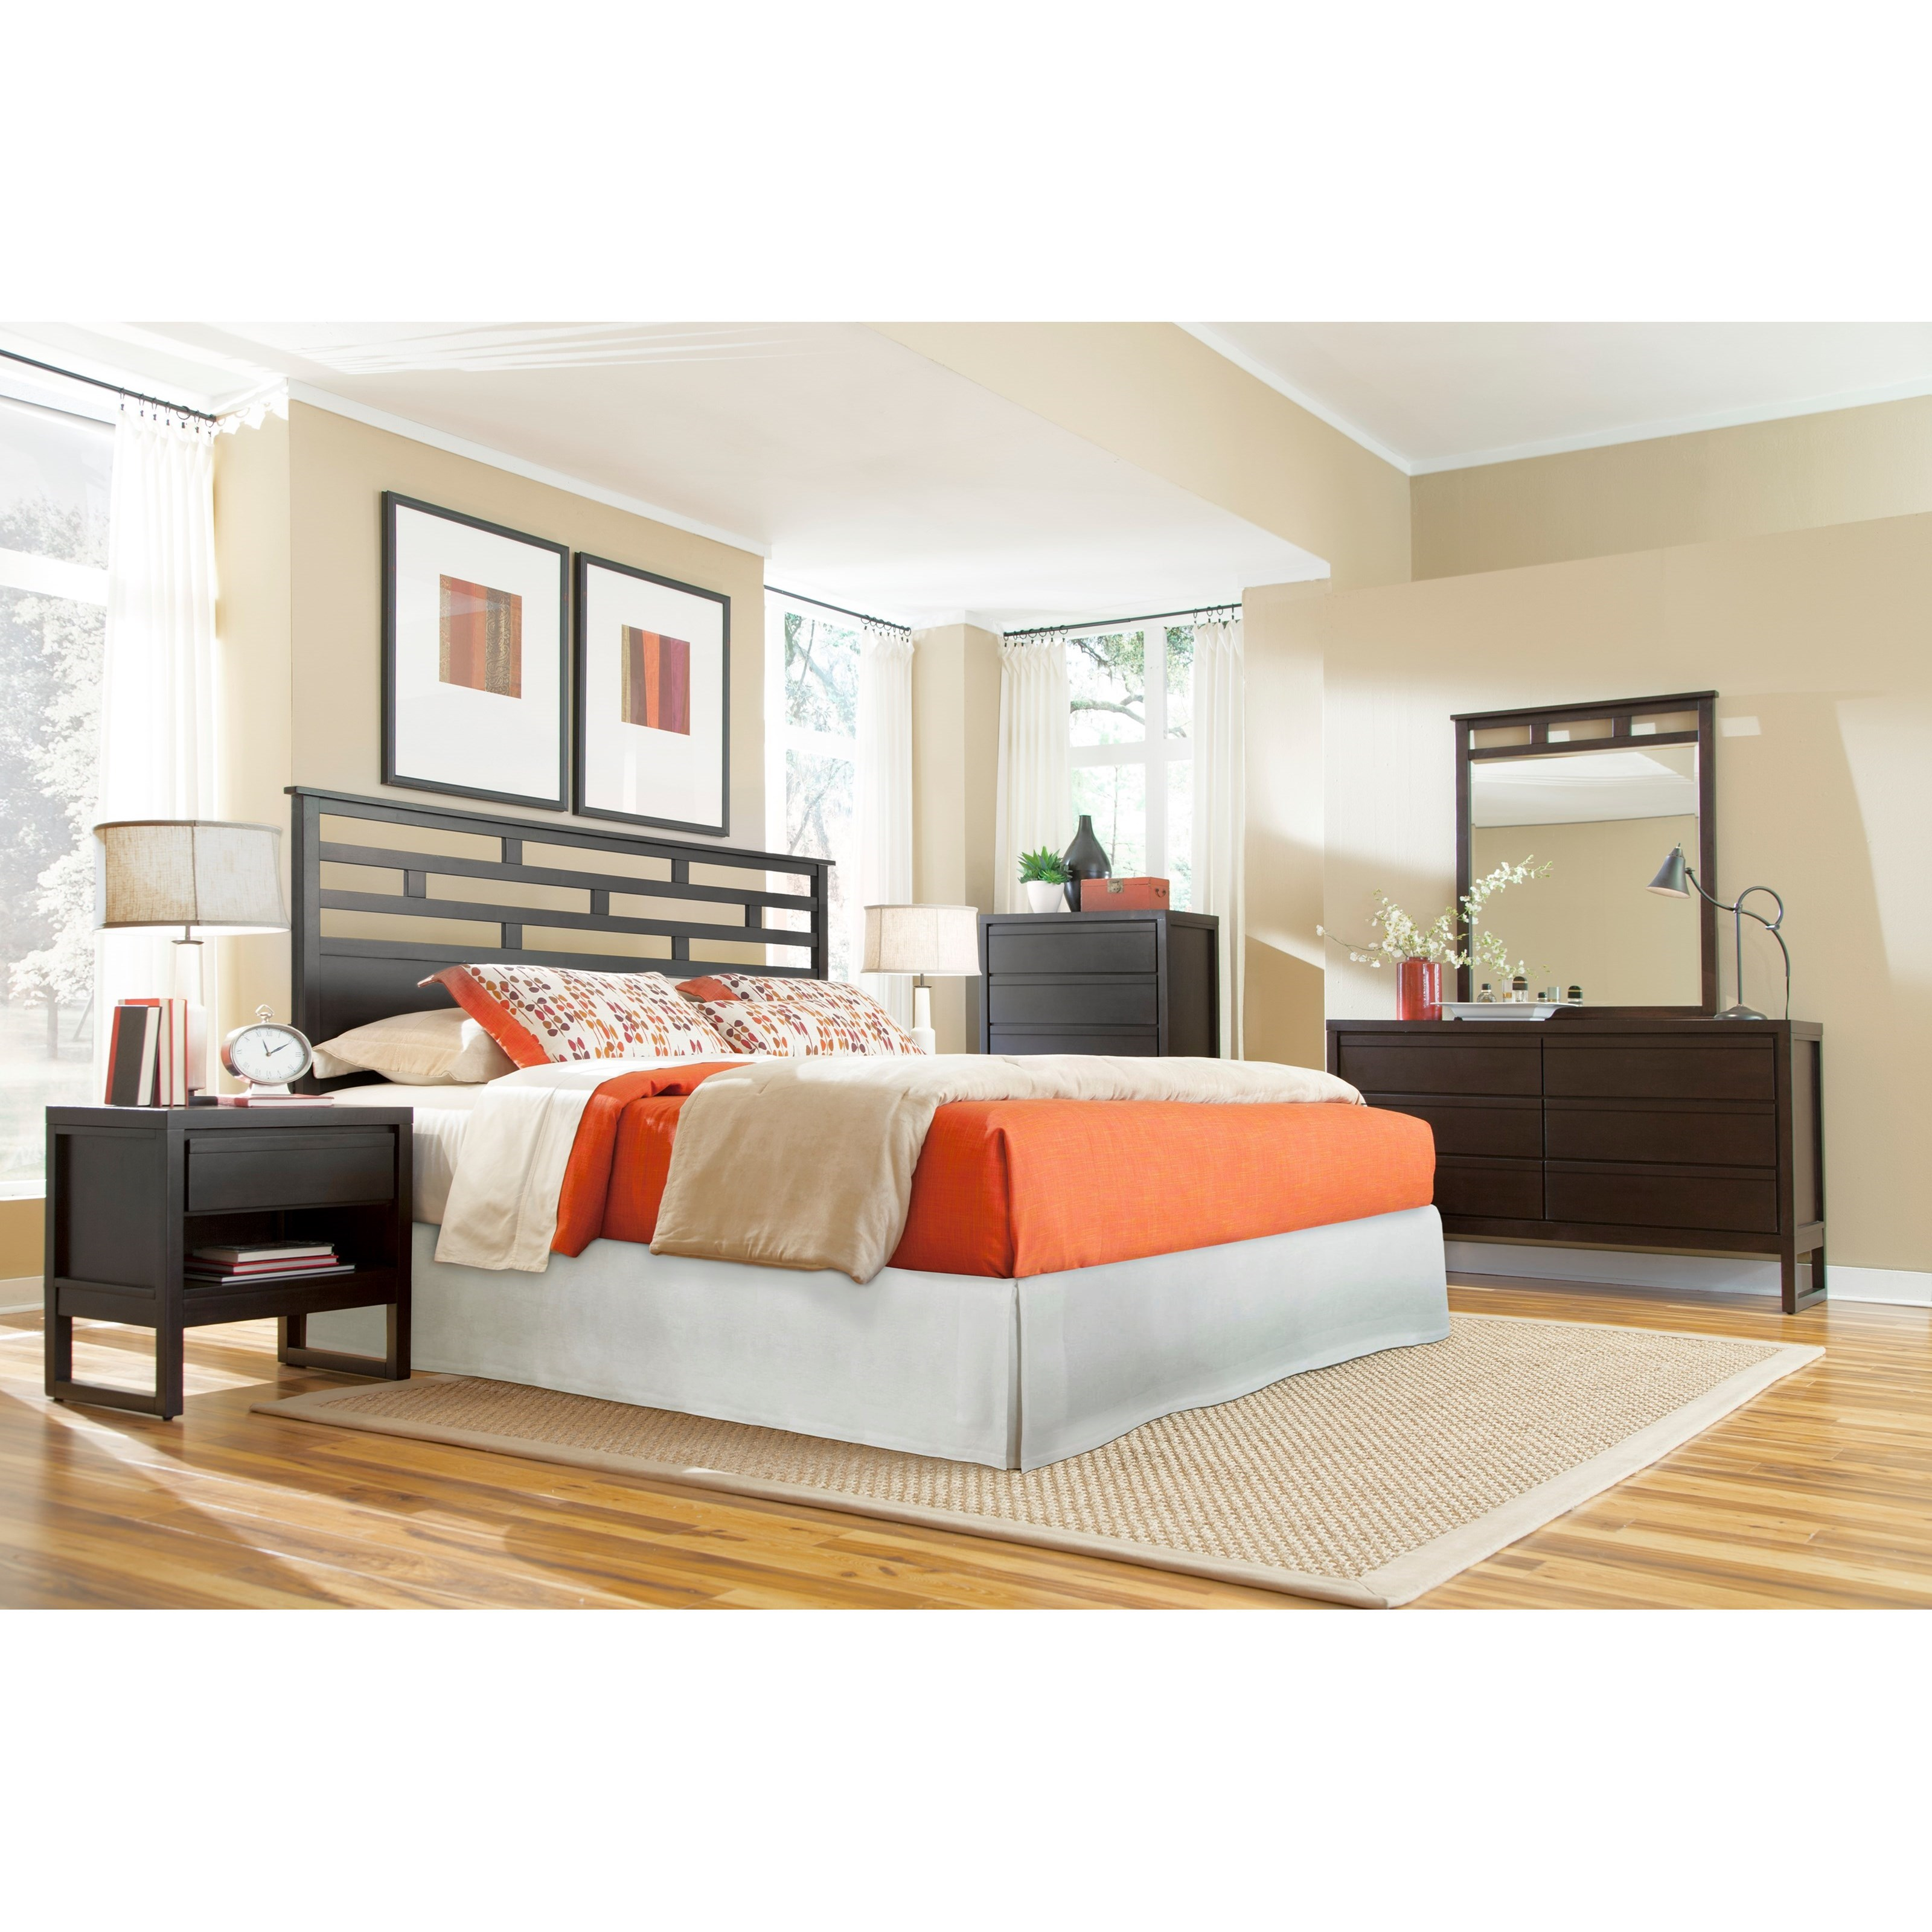 Athena Queen Bedroom Group by Progressive Furniture at Simply Home by Lindy's